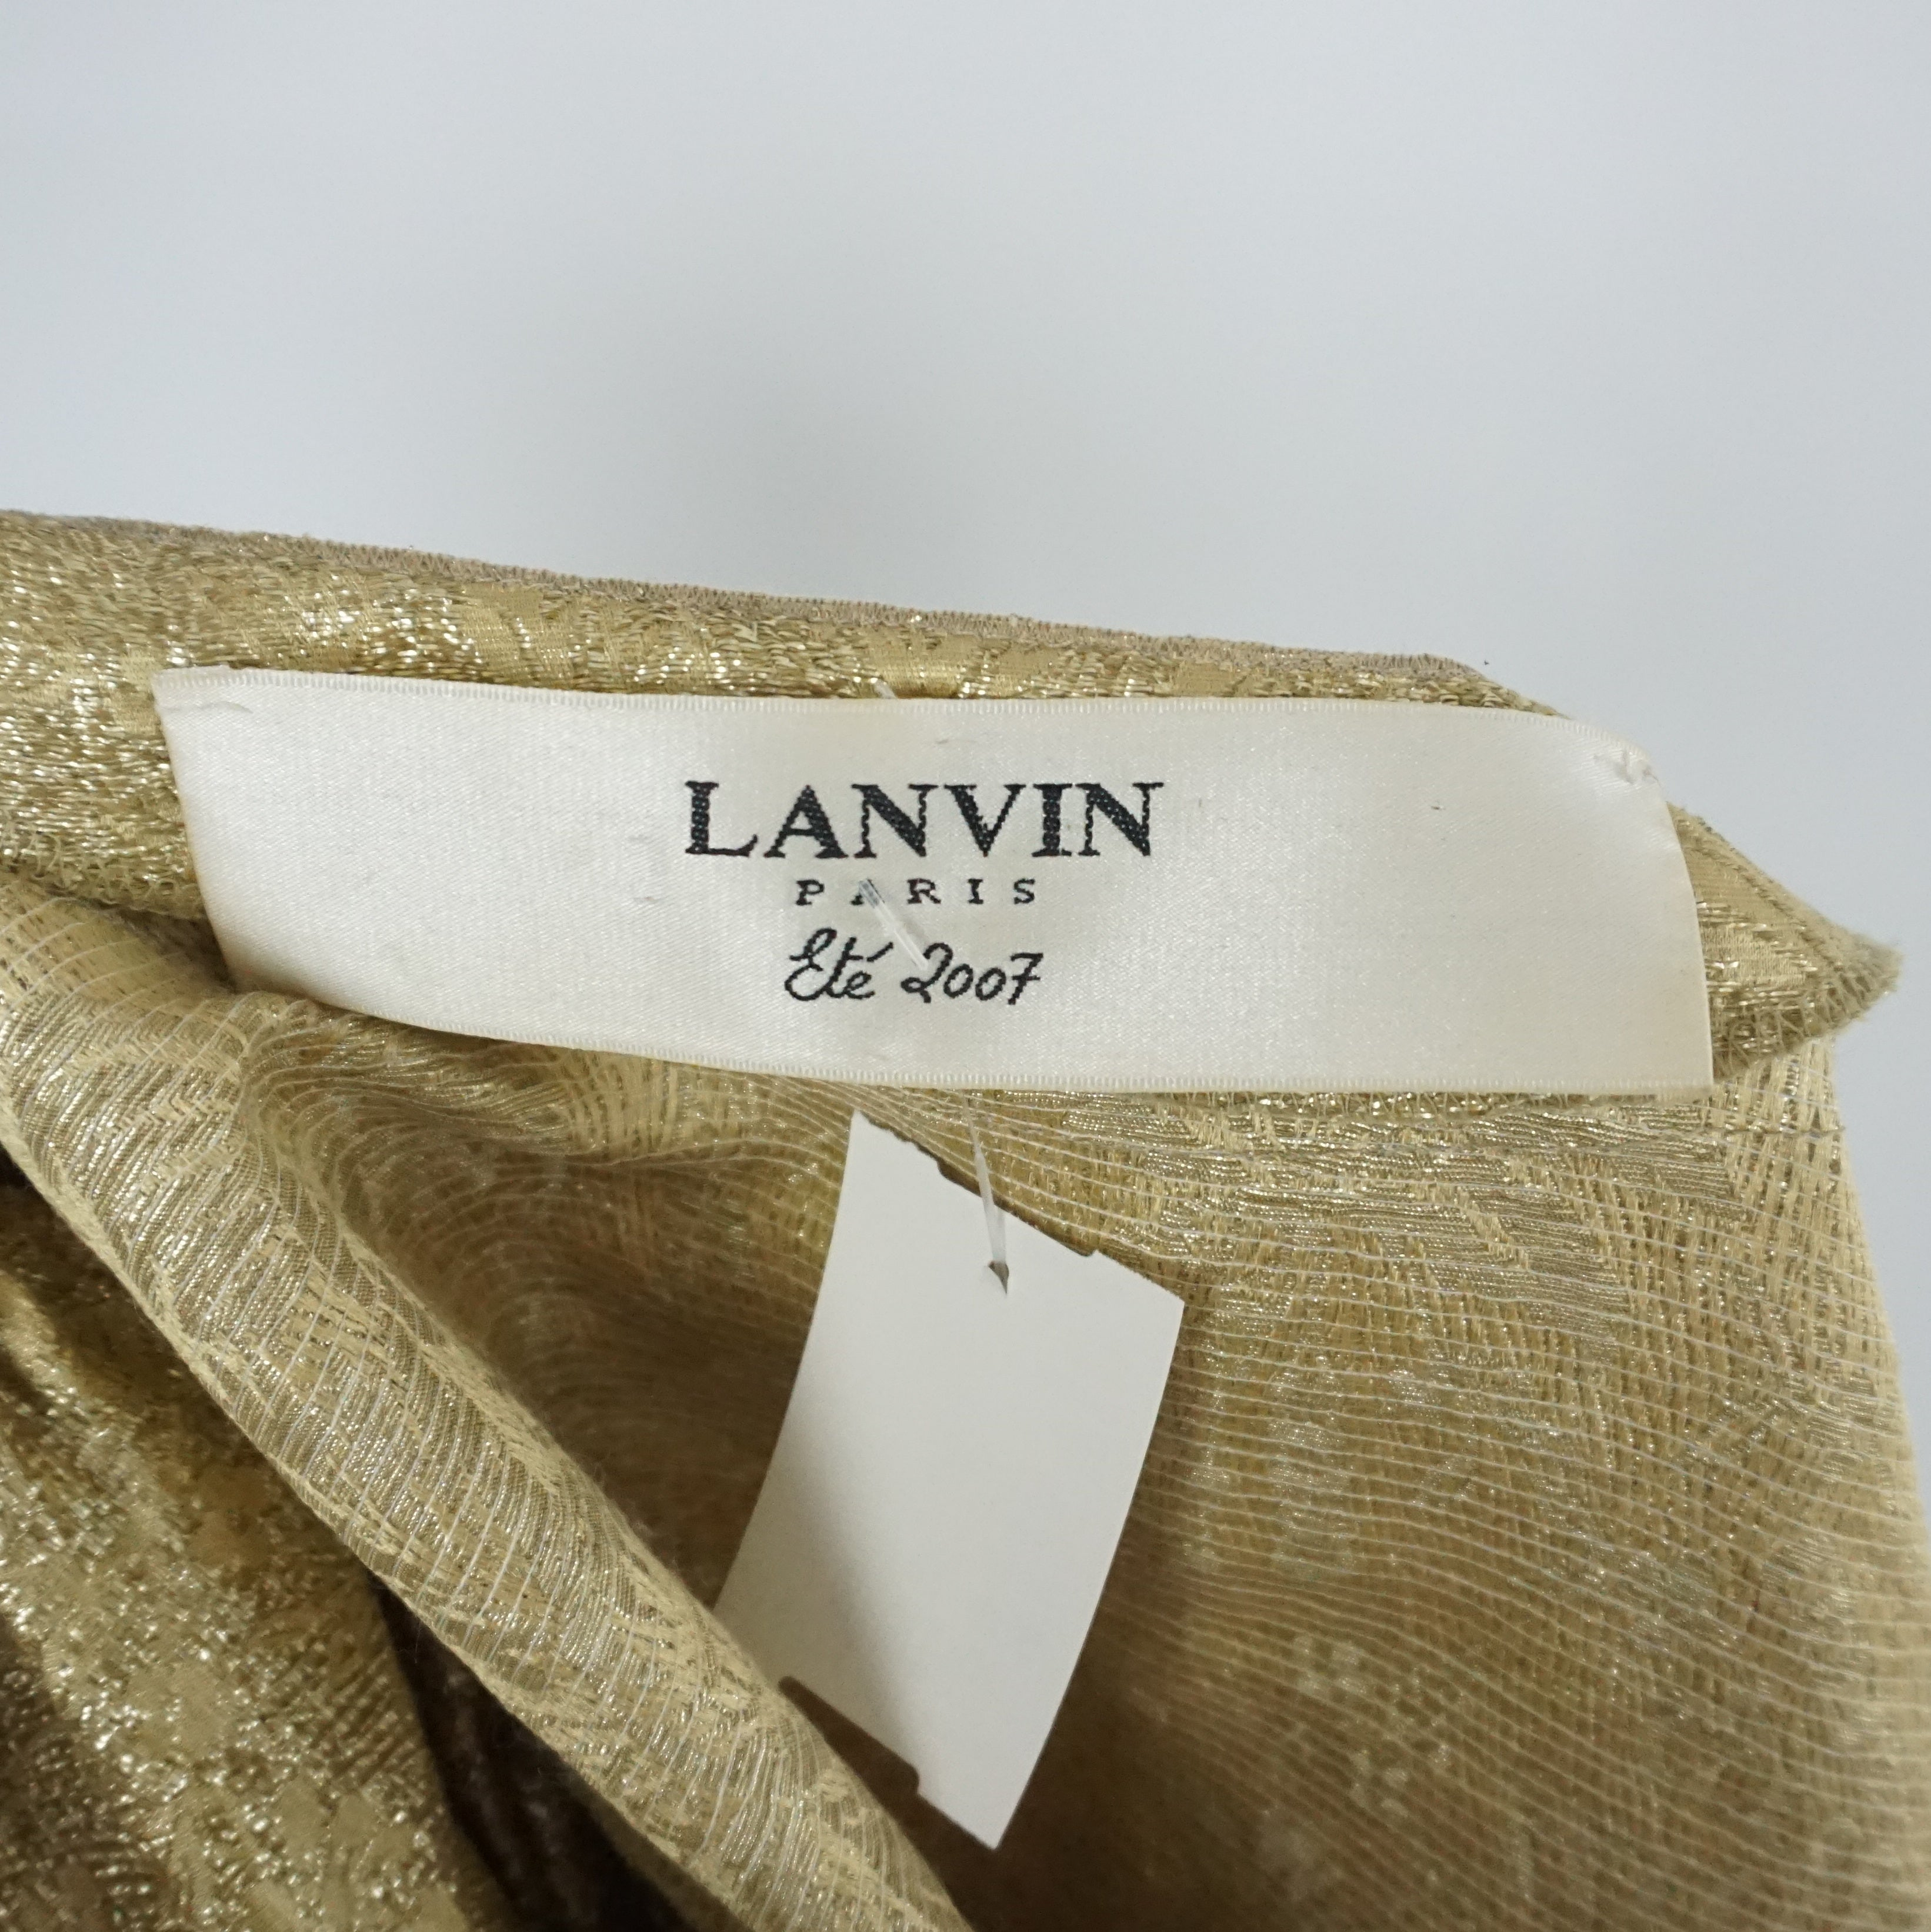 5f7389c8d4f Lanvin Gold Silk Brocade Short Sleeve Jacket - Sz 36 - Circa 2007 For Sale  at 1stdibs